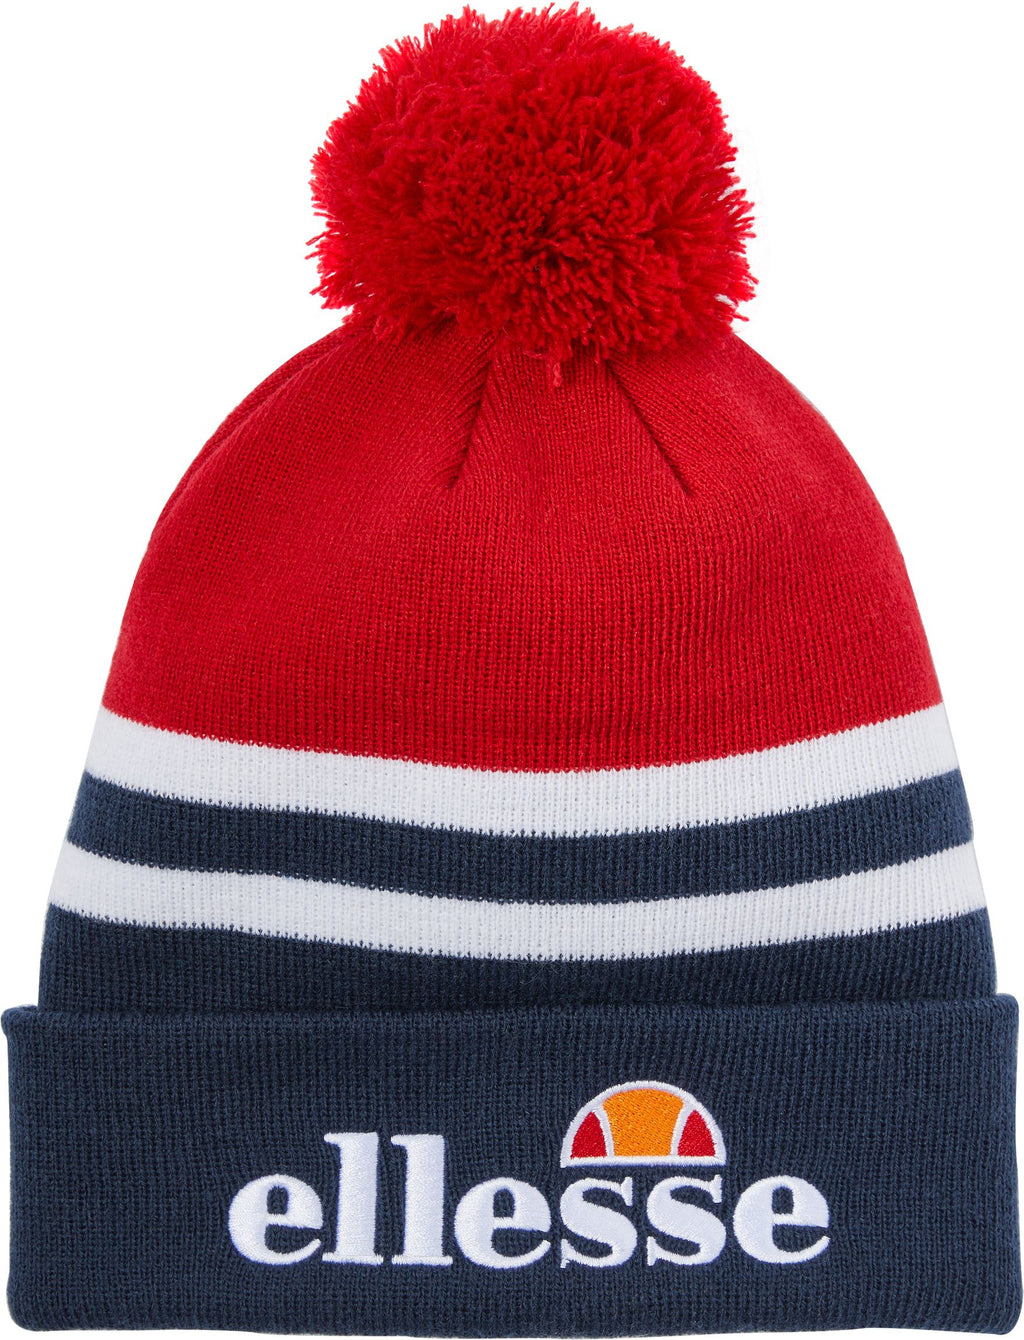 Ellesse-Meddon-Bobble-Beanie-Hat-Red